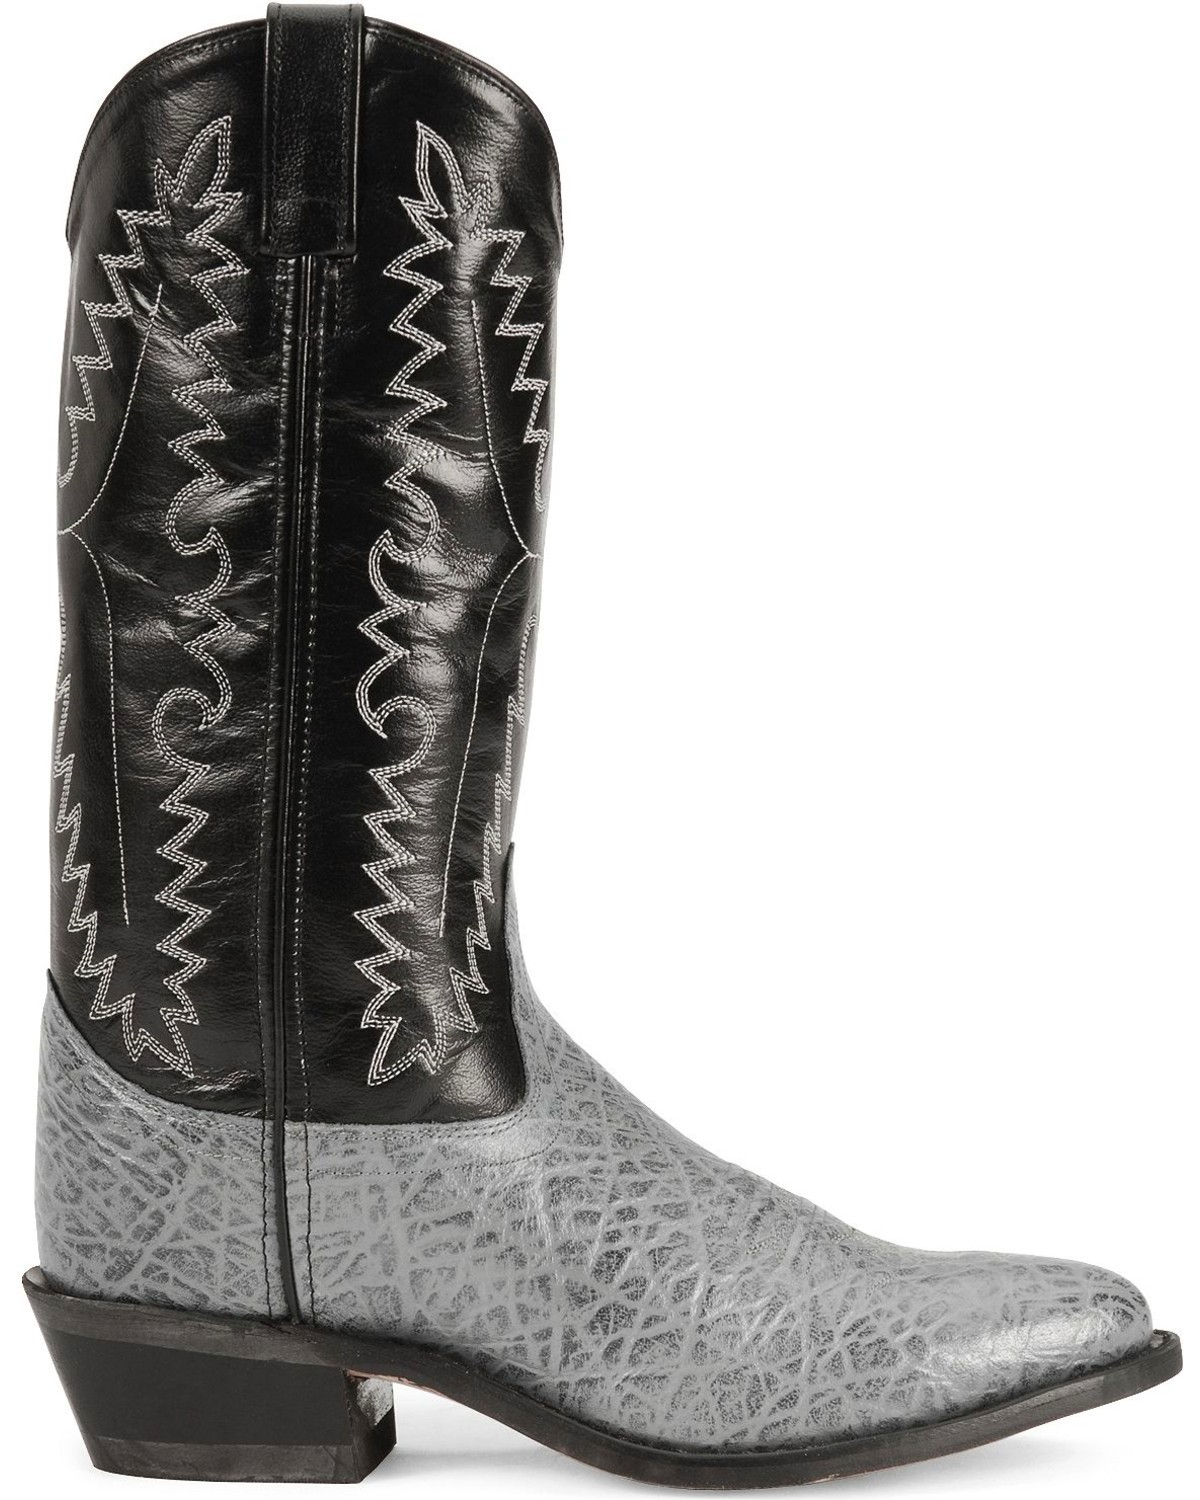 Old West Elephant Print Cowboy Boots Sheplers